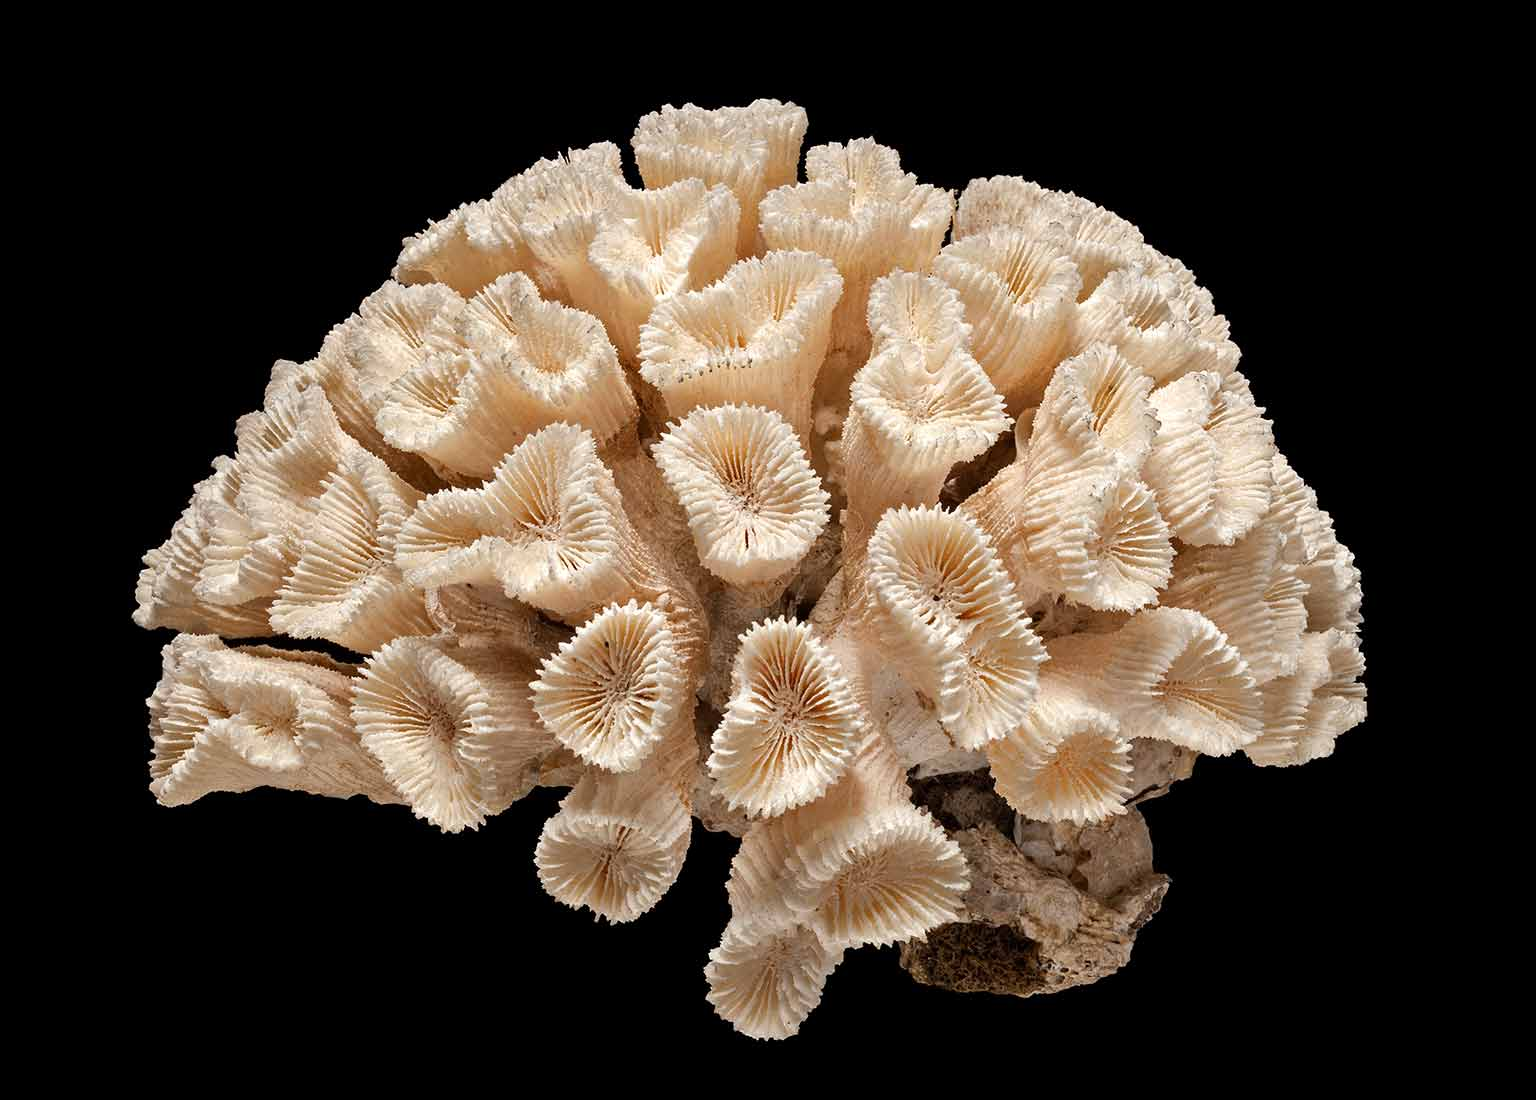 3. Coral Reefs: Secret Cities of the Sea, Natural History Museum - Coral specimens © The Trustees of the Natural History Museum, London